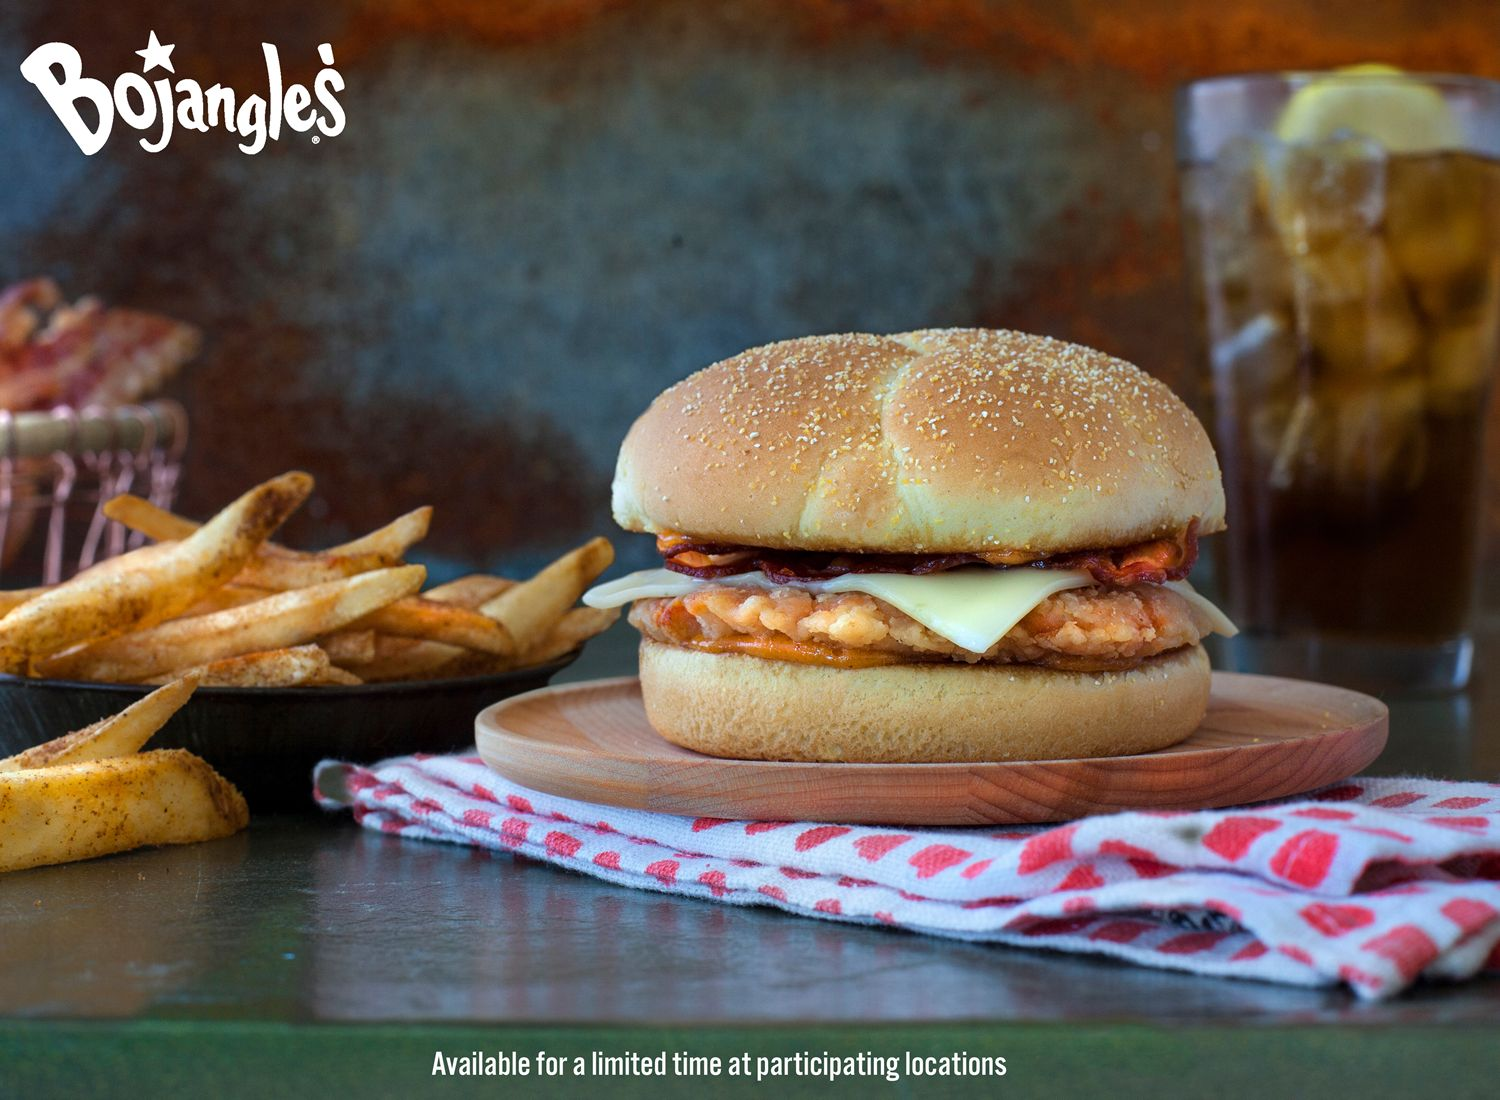 Spice Up Your Lunch: Grab Bojangles' All-New Sweet Cayenne Cajun Filet Sandwich